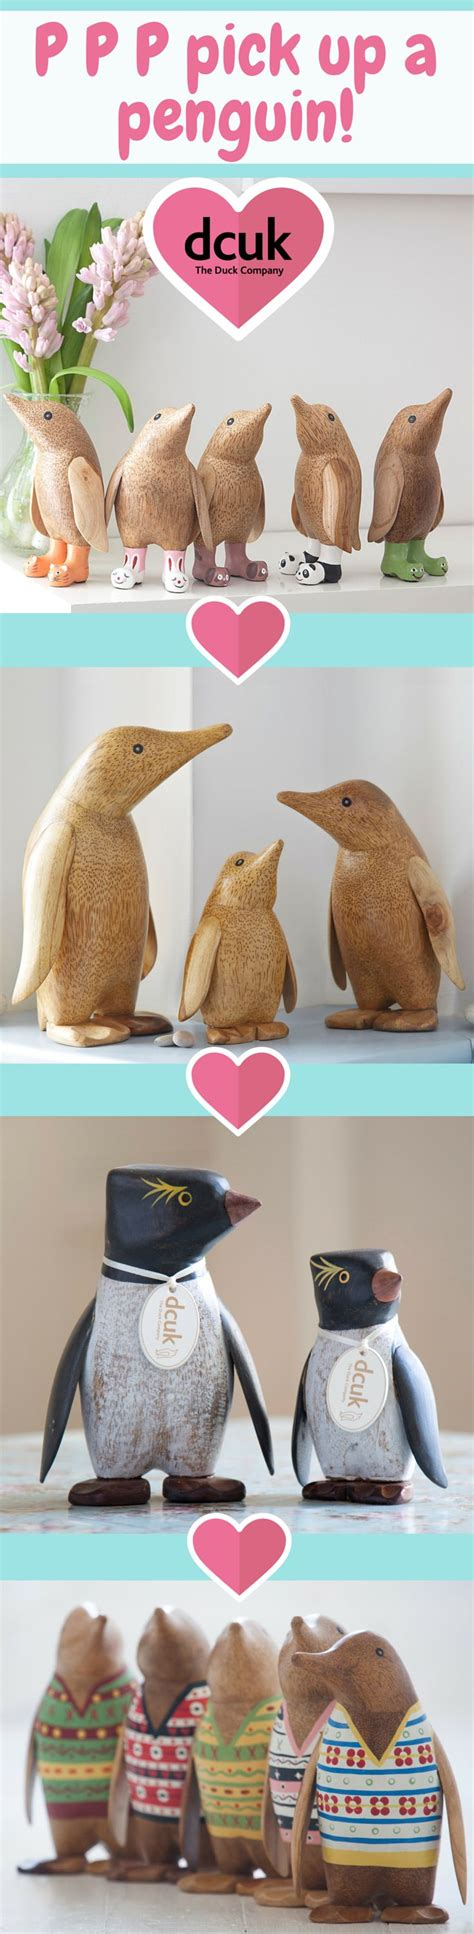 Penguin Home Decor 461 Best Images About Home Inspiration On Pinterest Small Room Moroccan Decor And Shelves